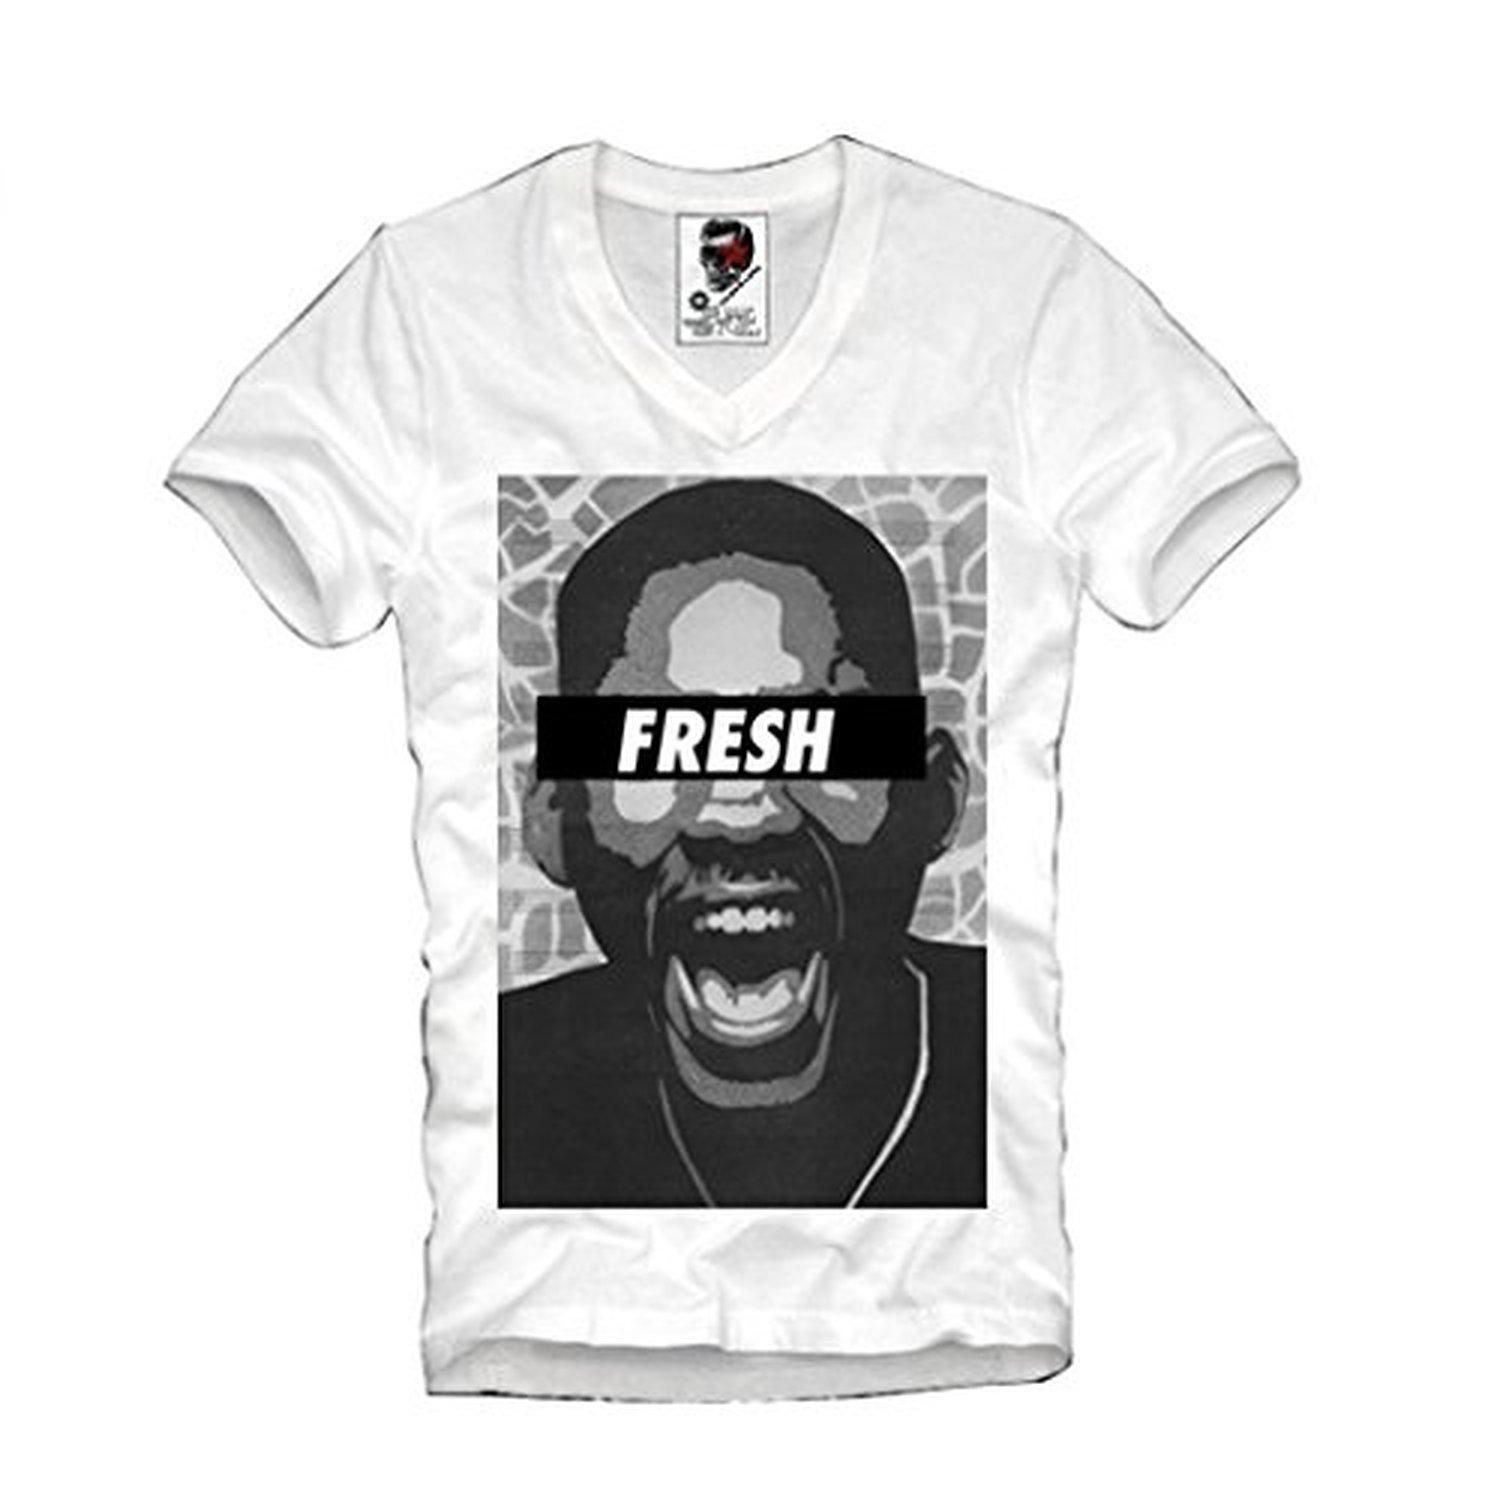 E1SYNDICATE MENS V-NECK T-SHIRT FRESH PRINCE OF BEL AIR WILL SMITH S/M/L/XL - Brought to you by Avarsha.com